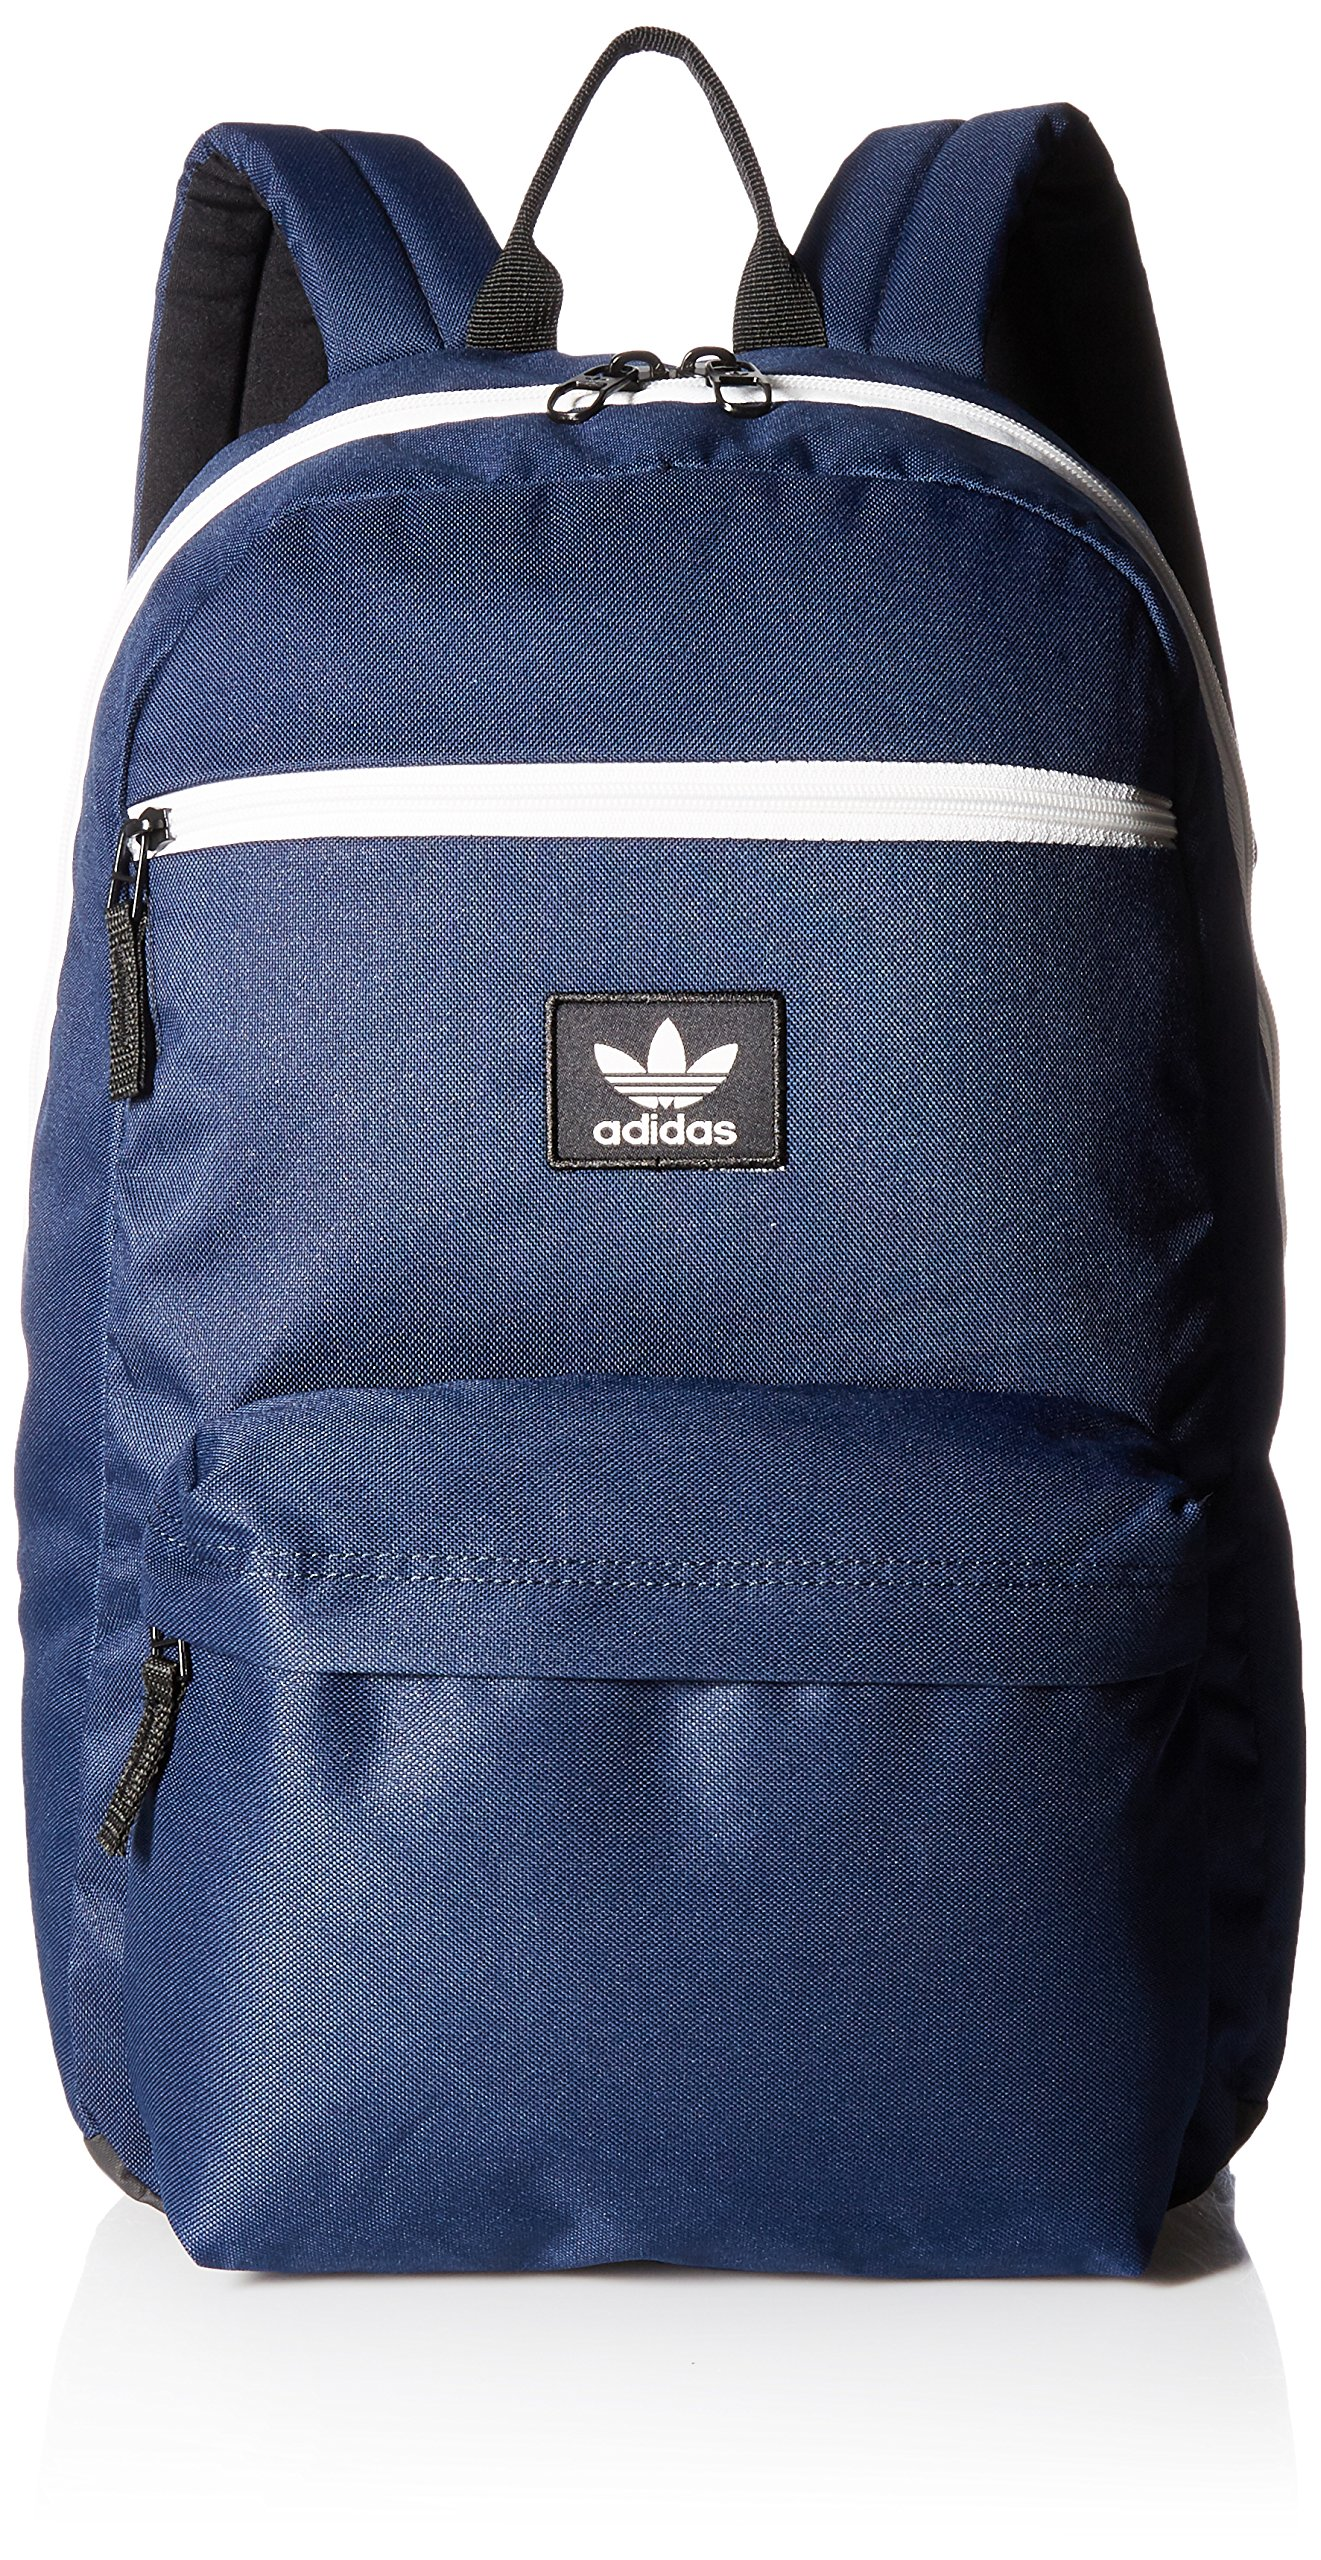 adidas Originals National Padded Backpack, Collegiate Navy/Chalk White, One Size